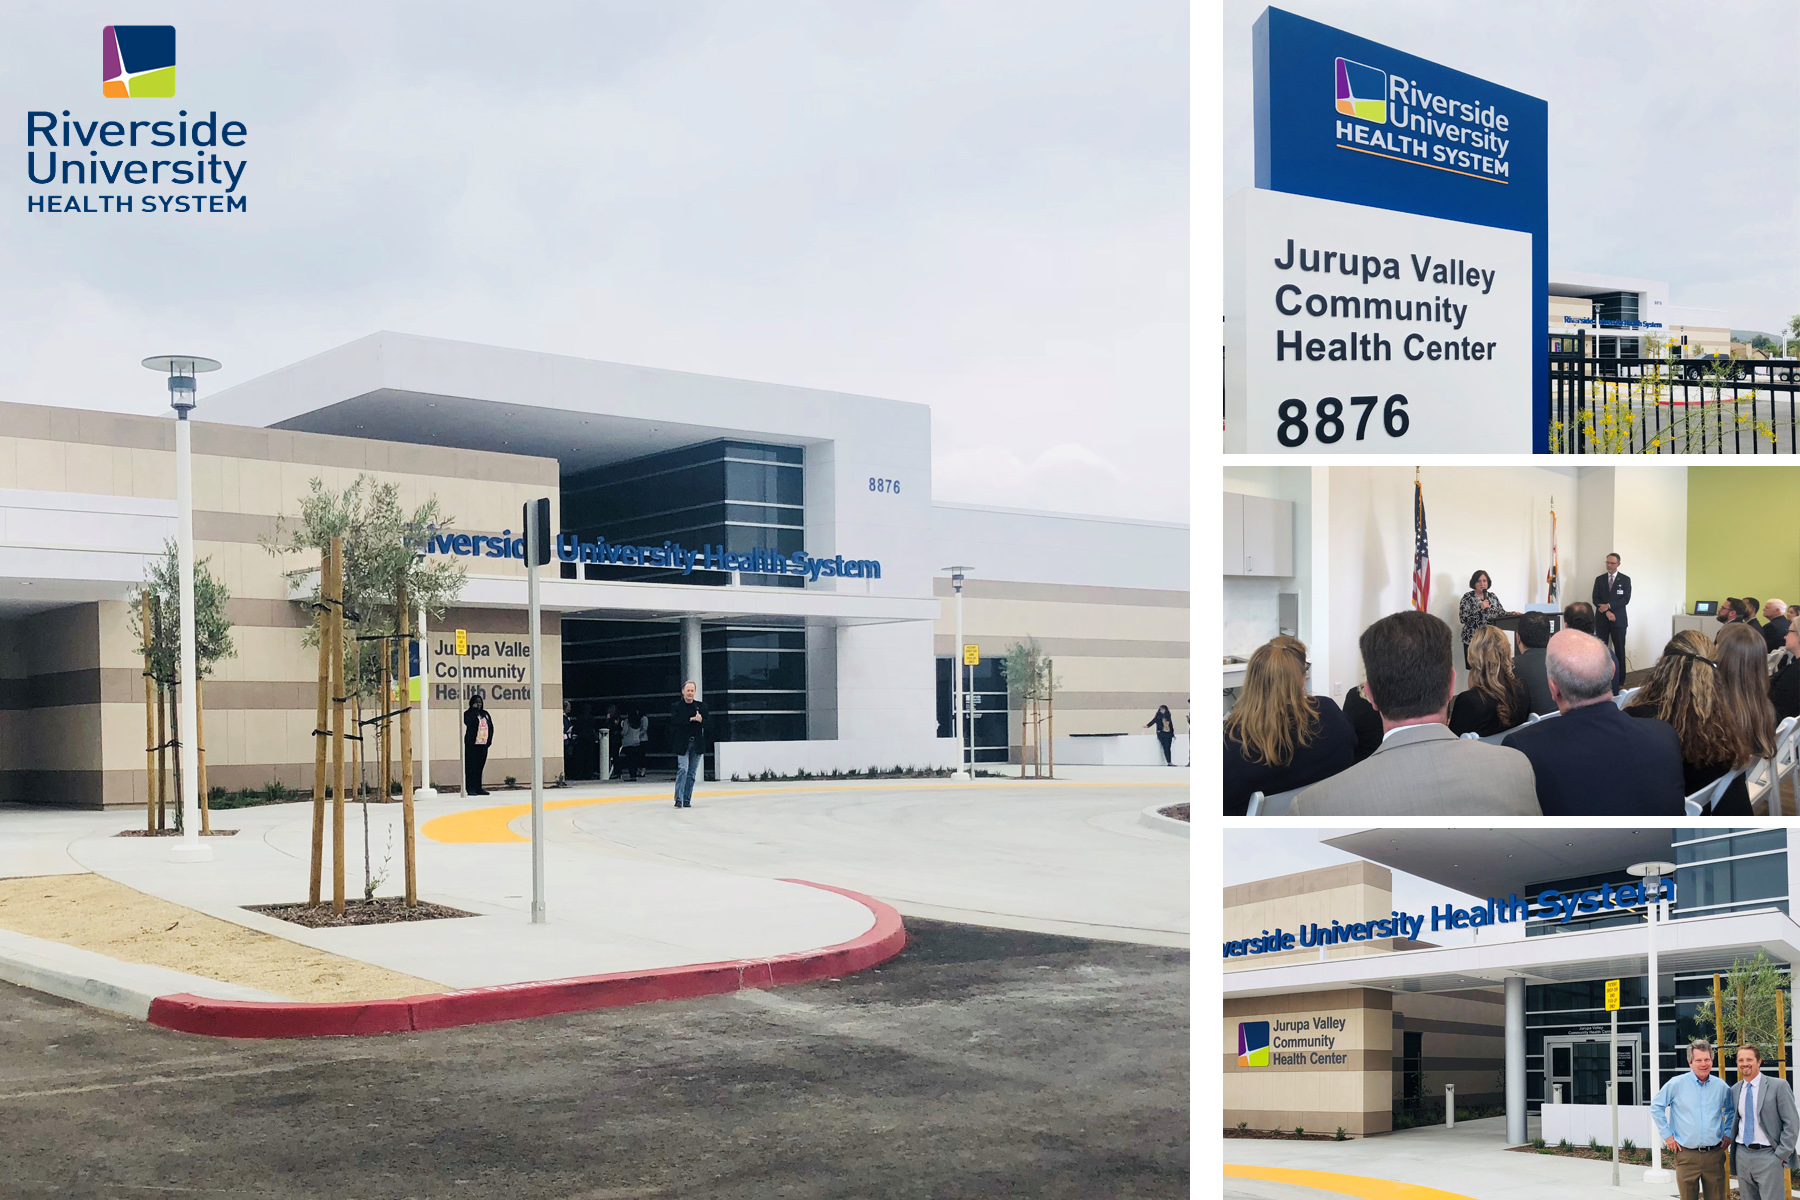 Grand Opening of the Riverside University Jurupa Valley Community Health Center